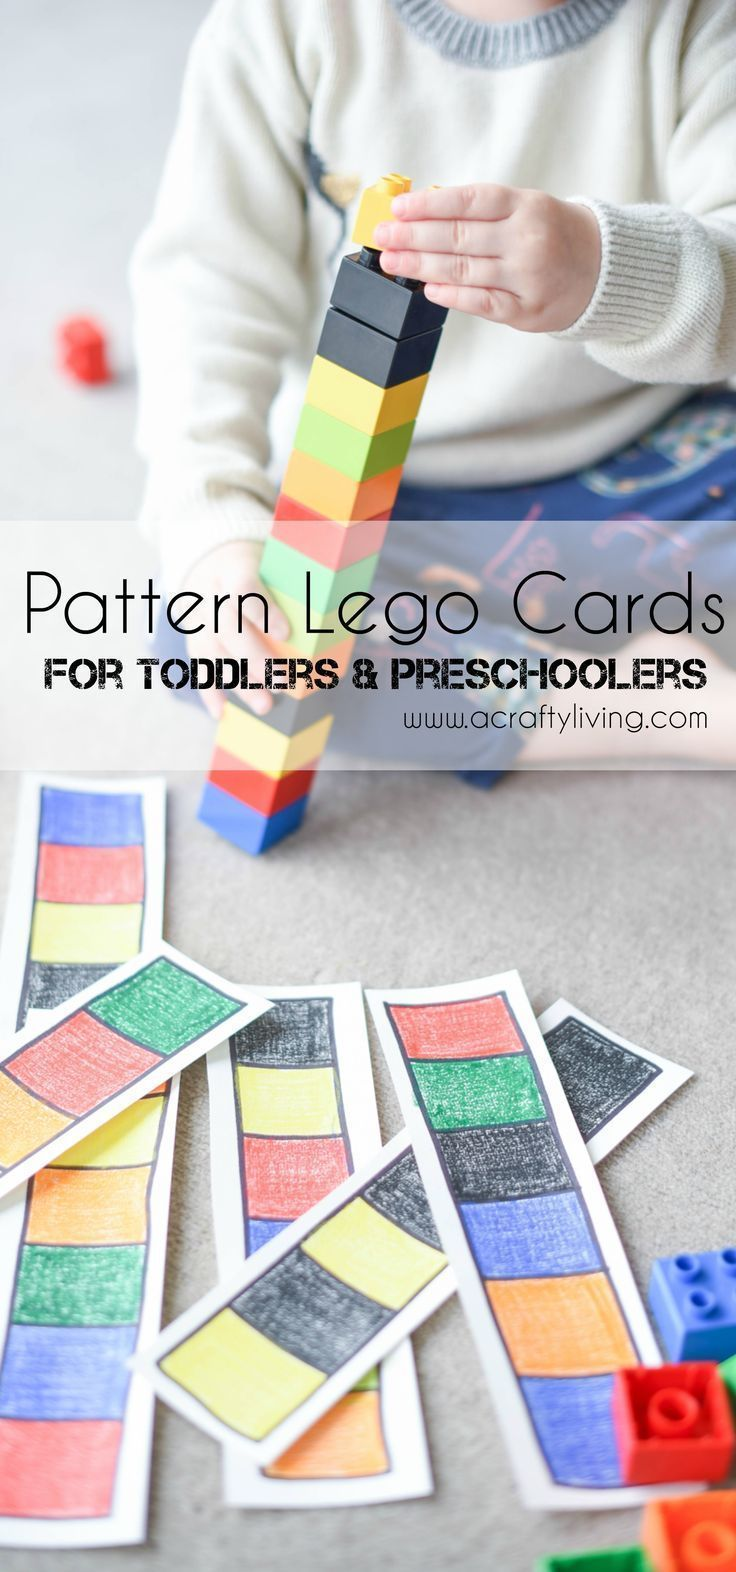 DIY Lego Pattern Cards for Toddlers & Preschoolers! http://www.acraftyliving.com